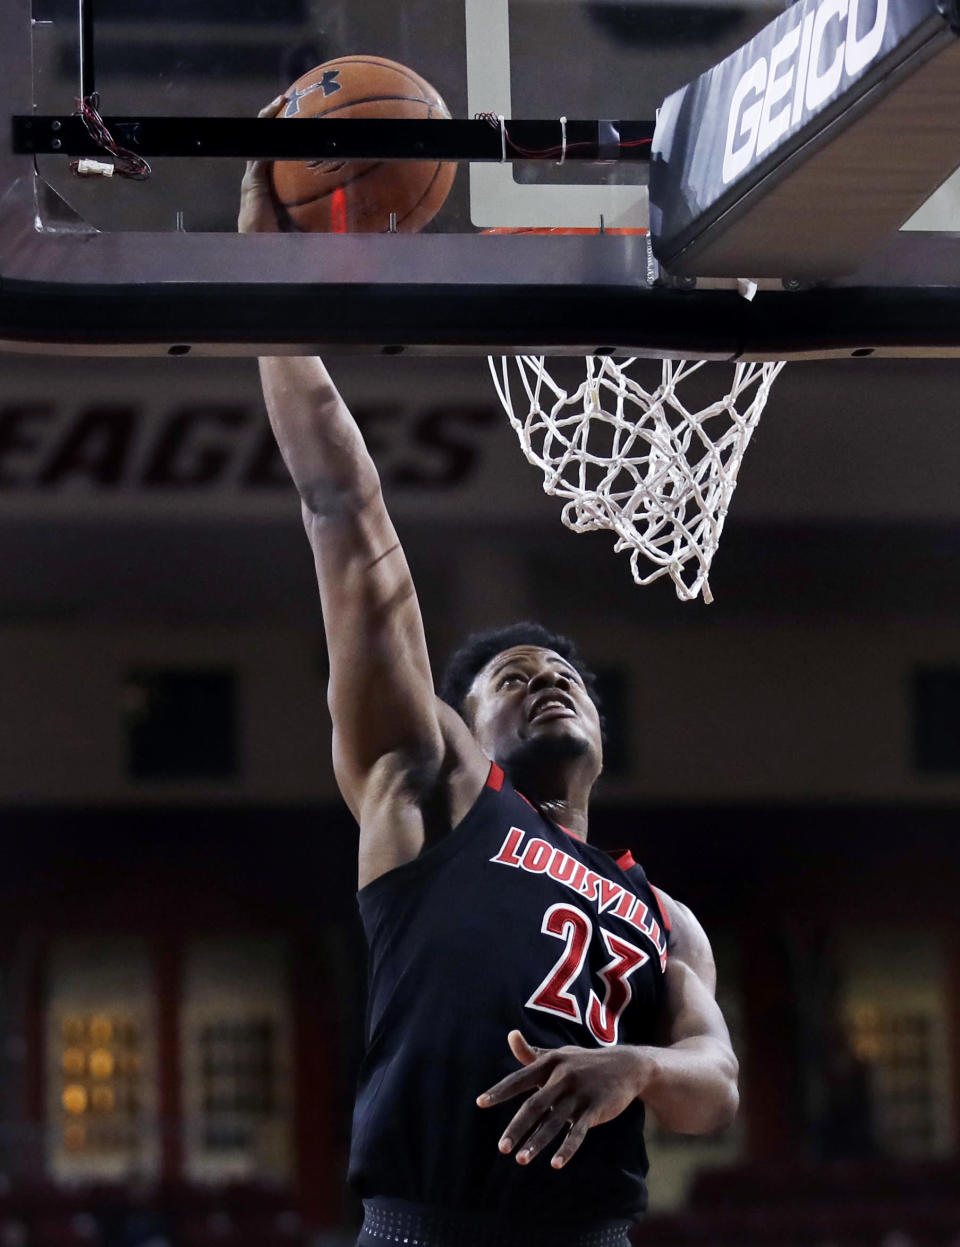 Louisville center Steven Enoch (23) lines up a dunk during the first half of an NCAA college basketball game against Boston College in Boston, Wednesday, Feb. 27, 2019. (AP Photo/Charles Krupa)